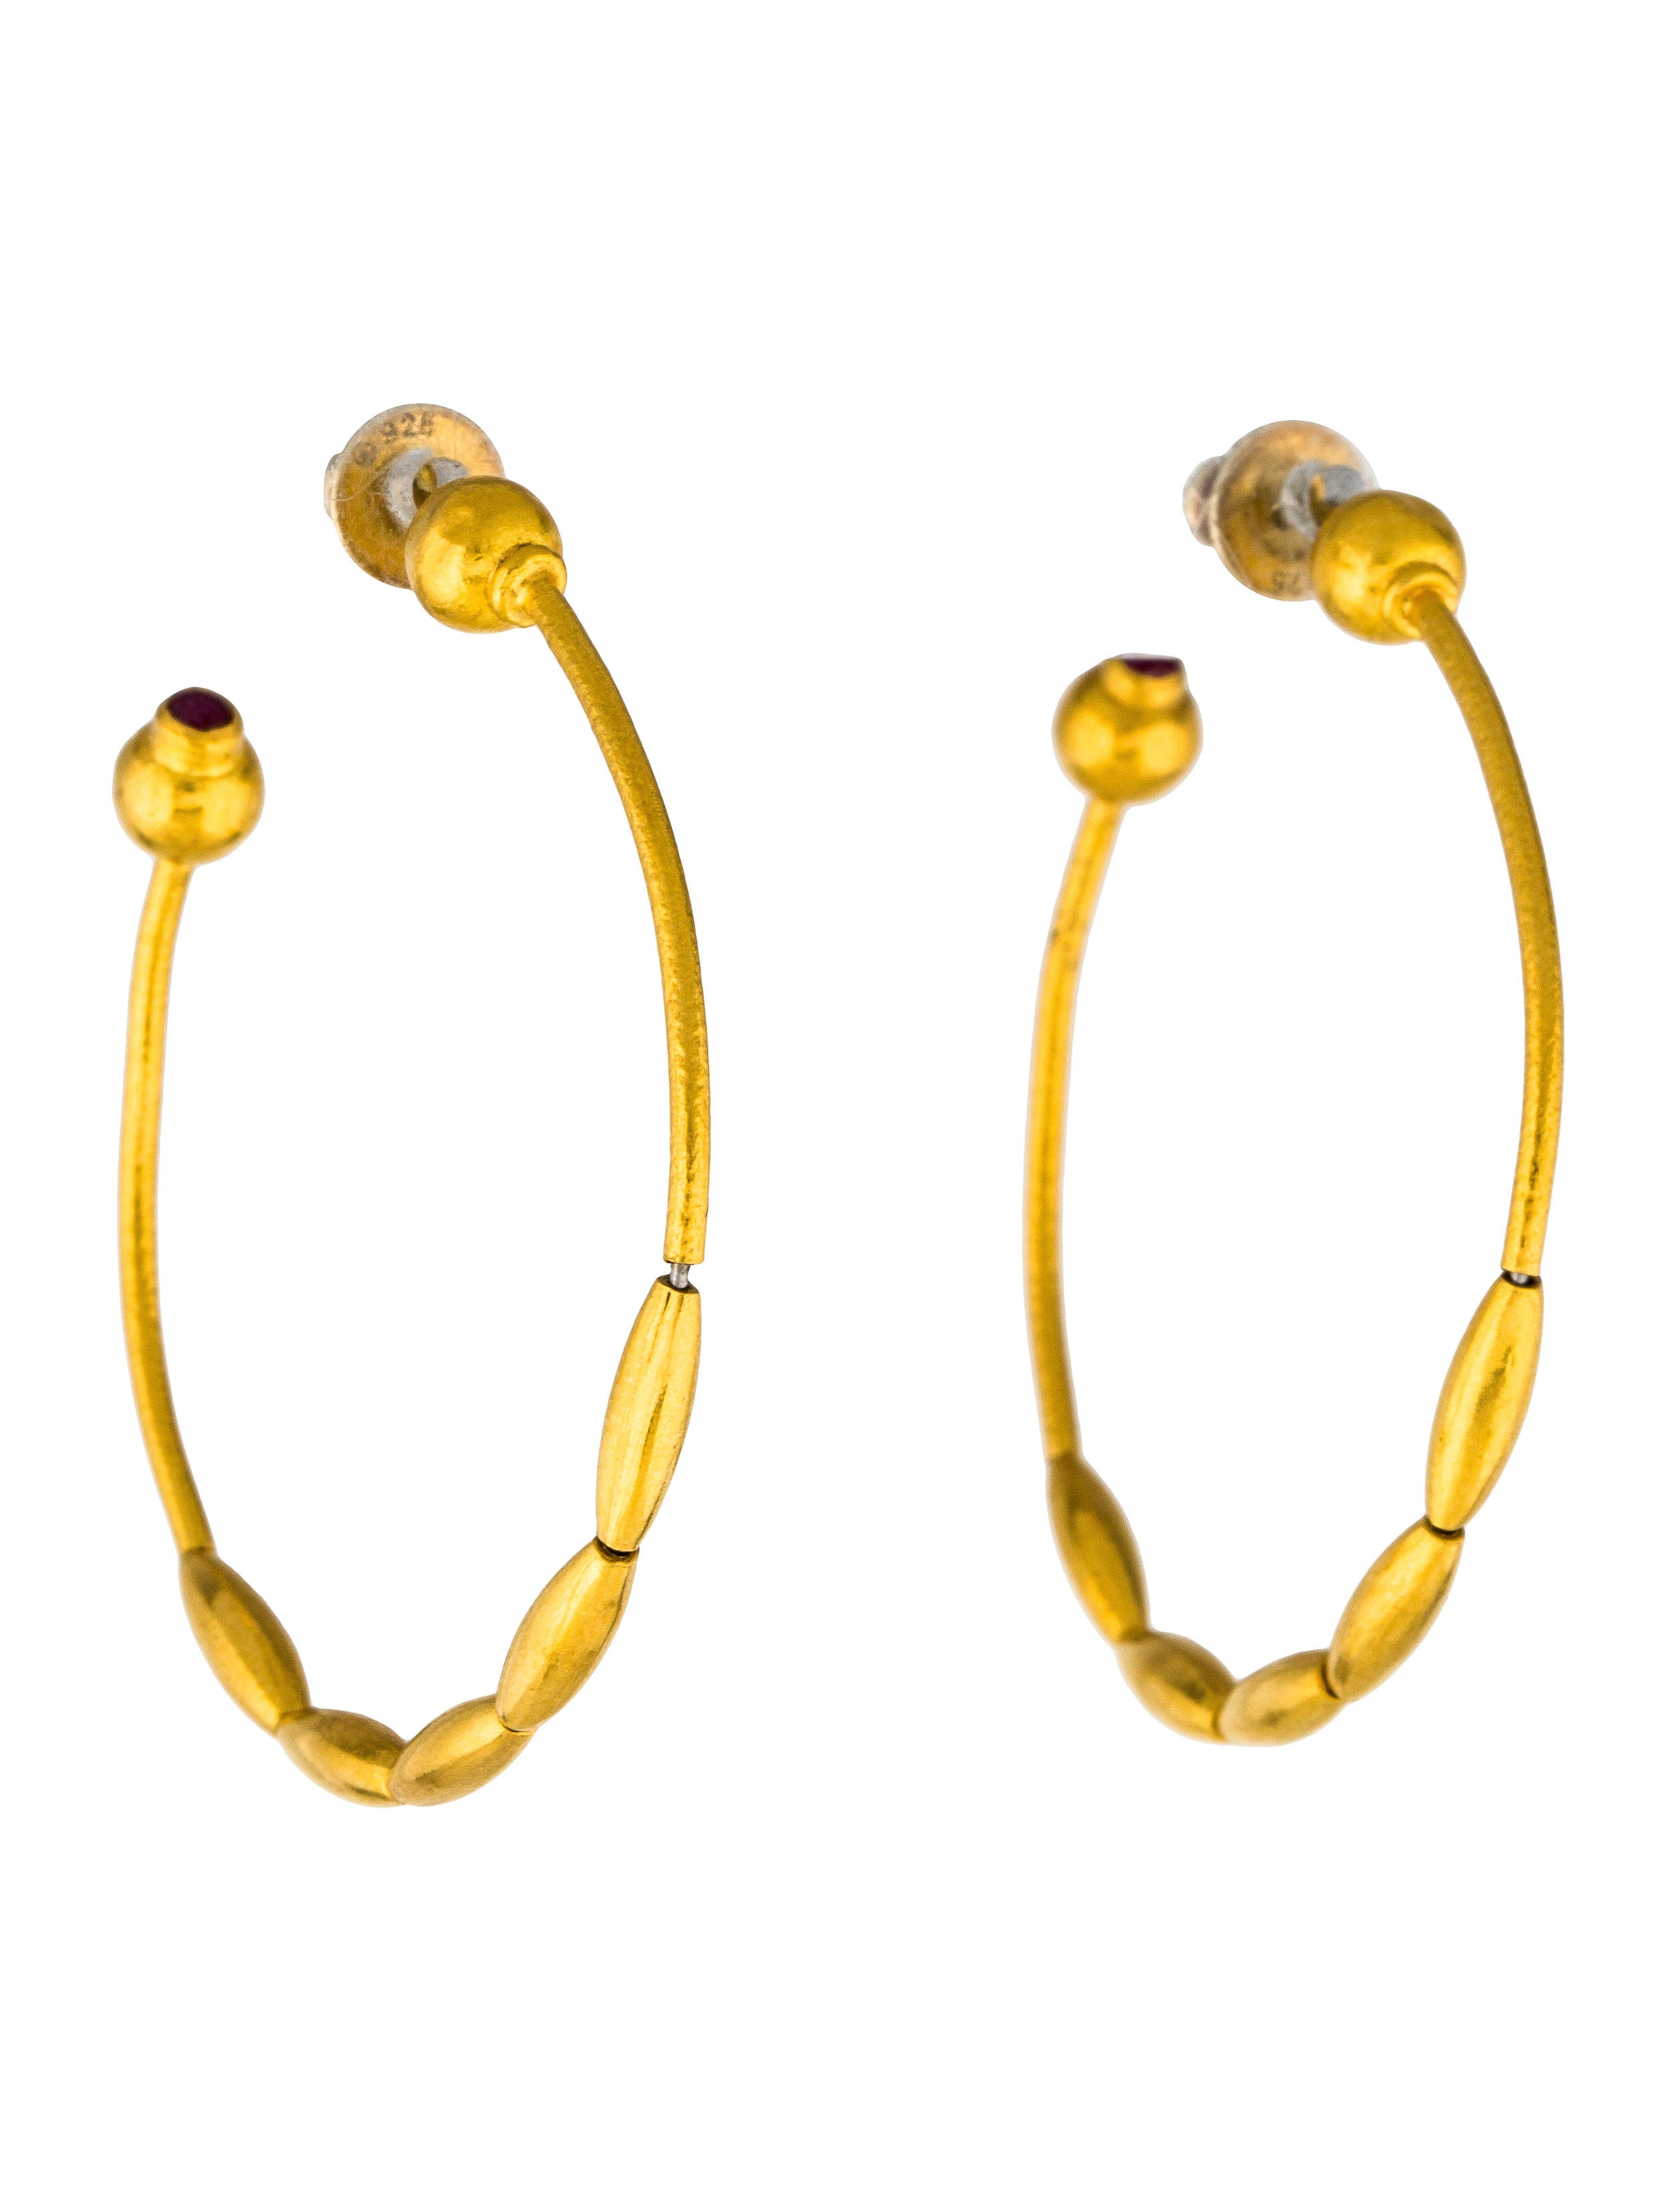 harari von diamond jewelry mart gold bargen yossi earrings s melissa product